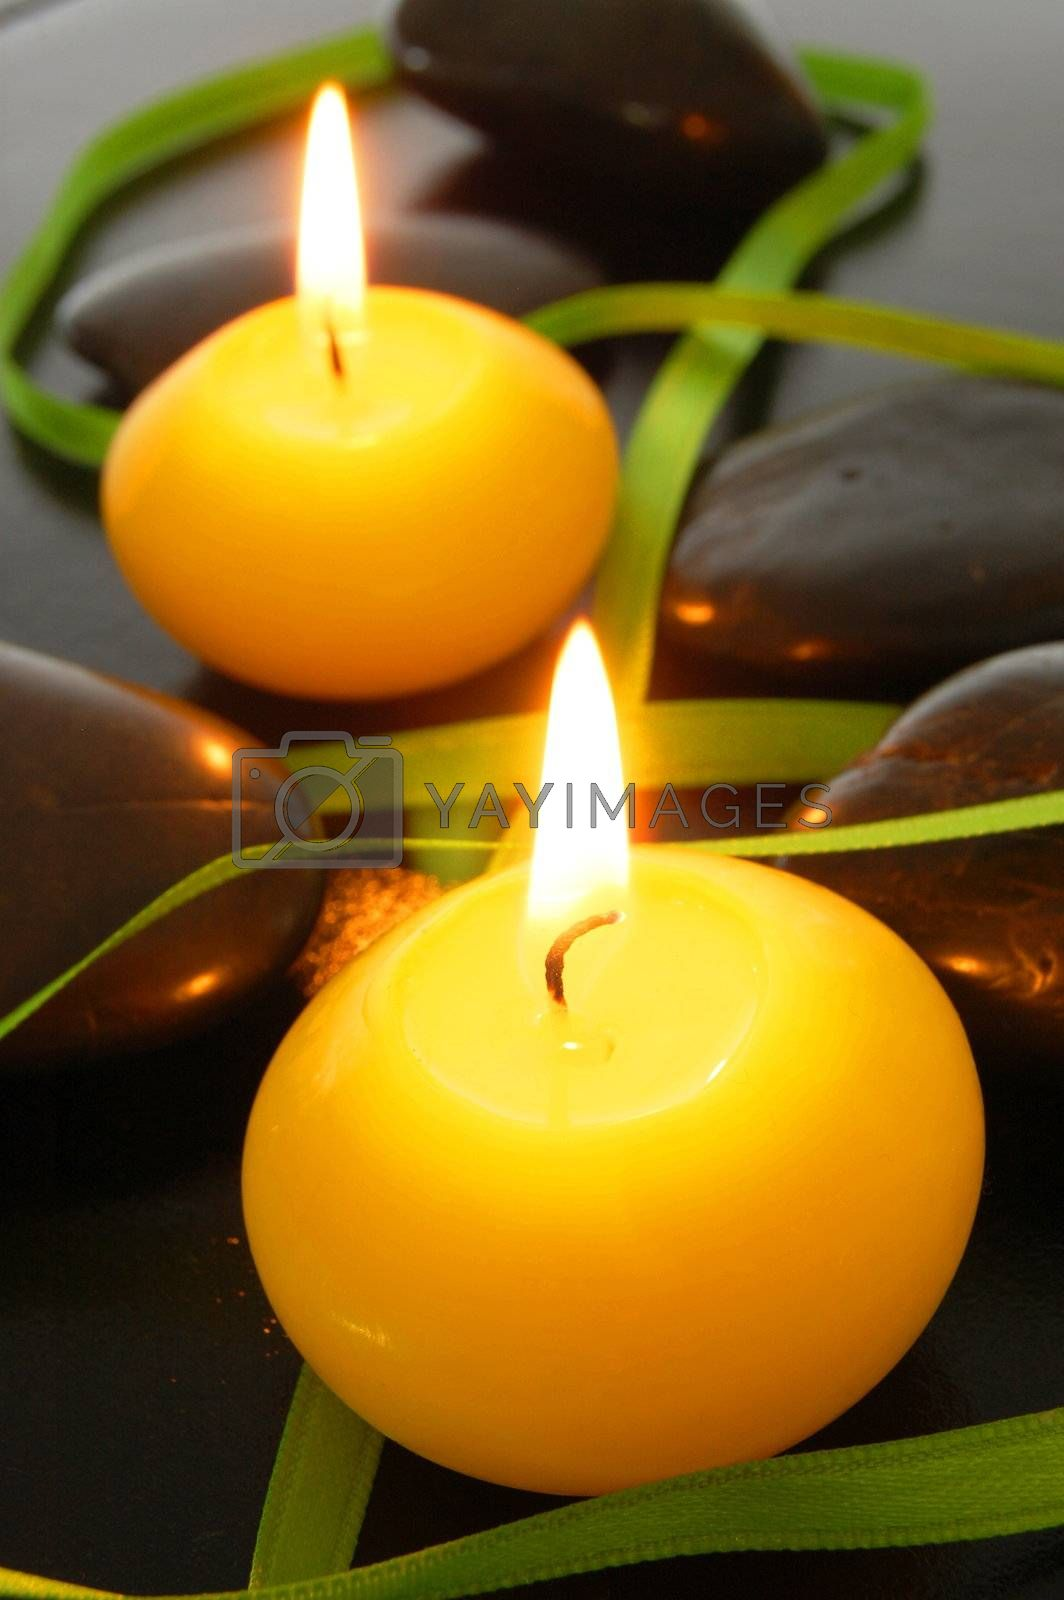 candle light showing spa love or romance feeling